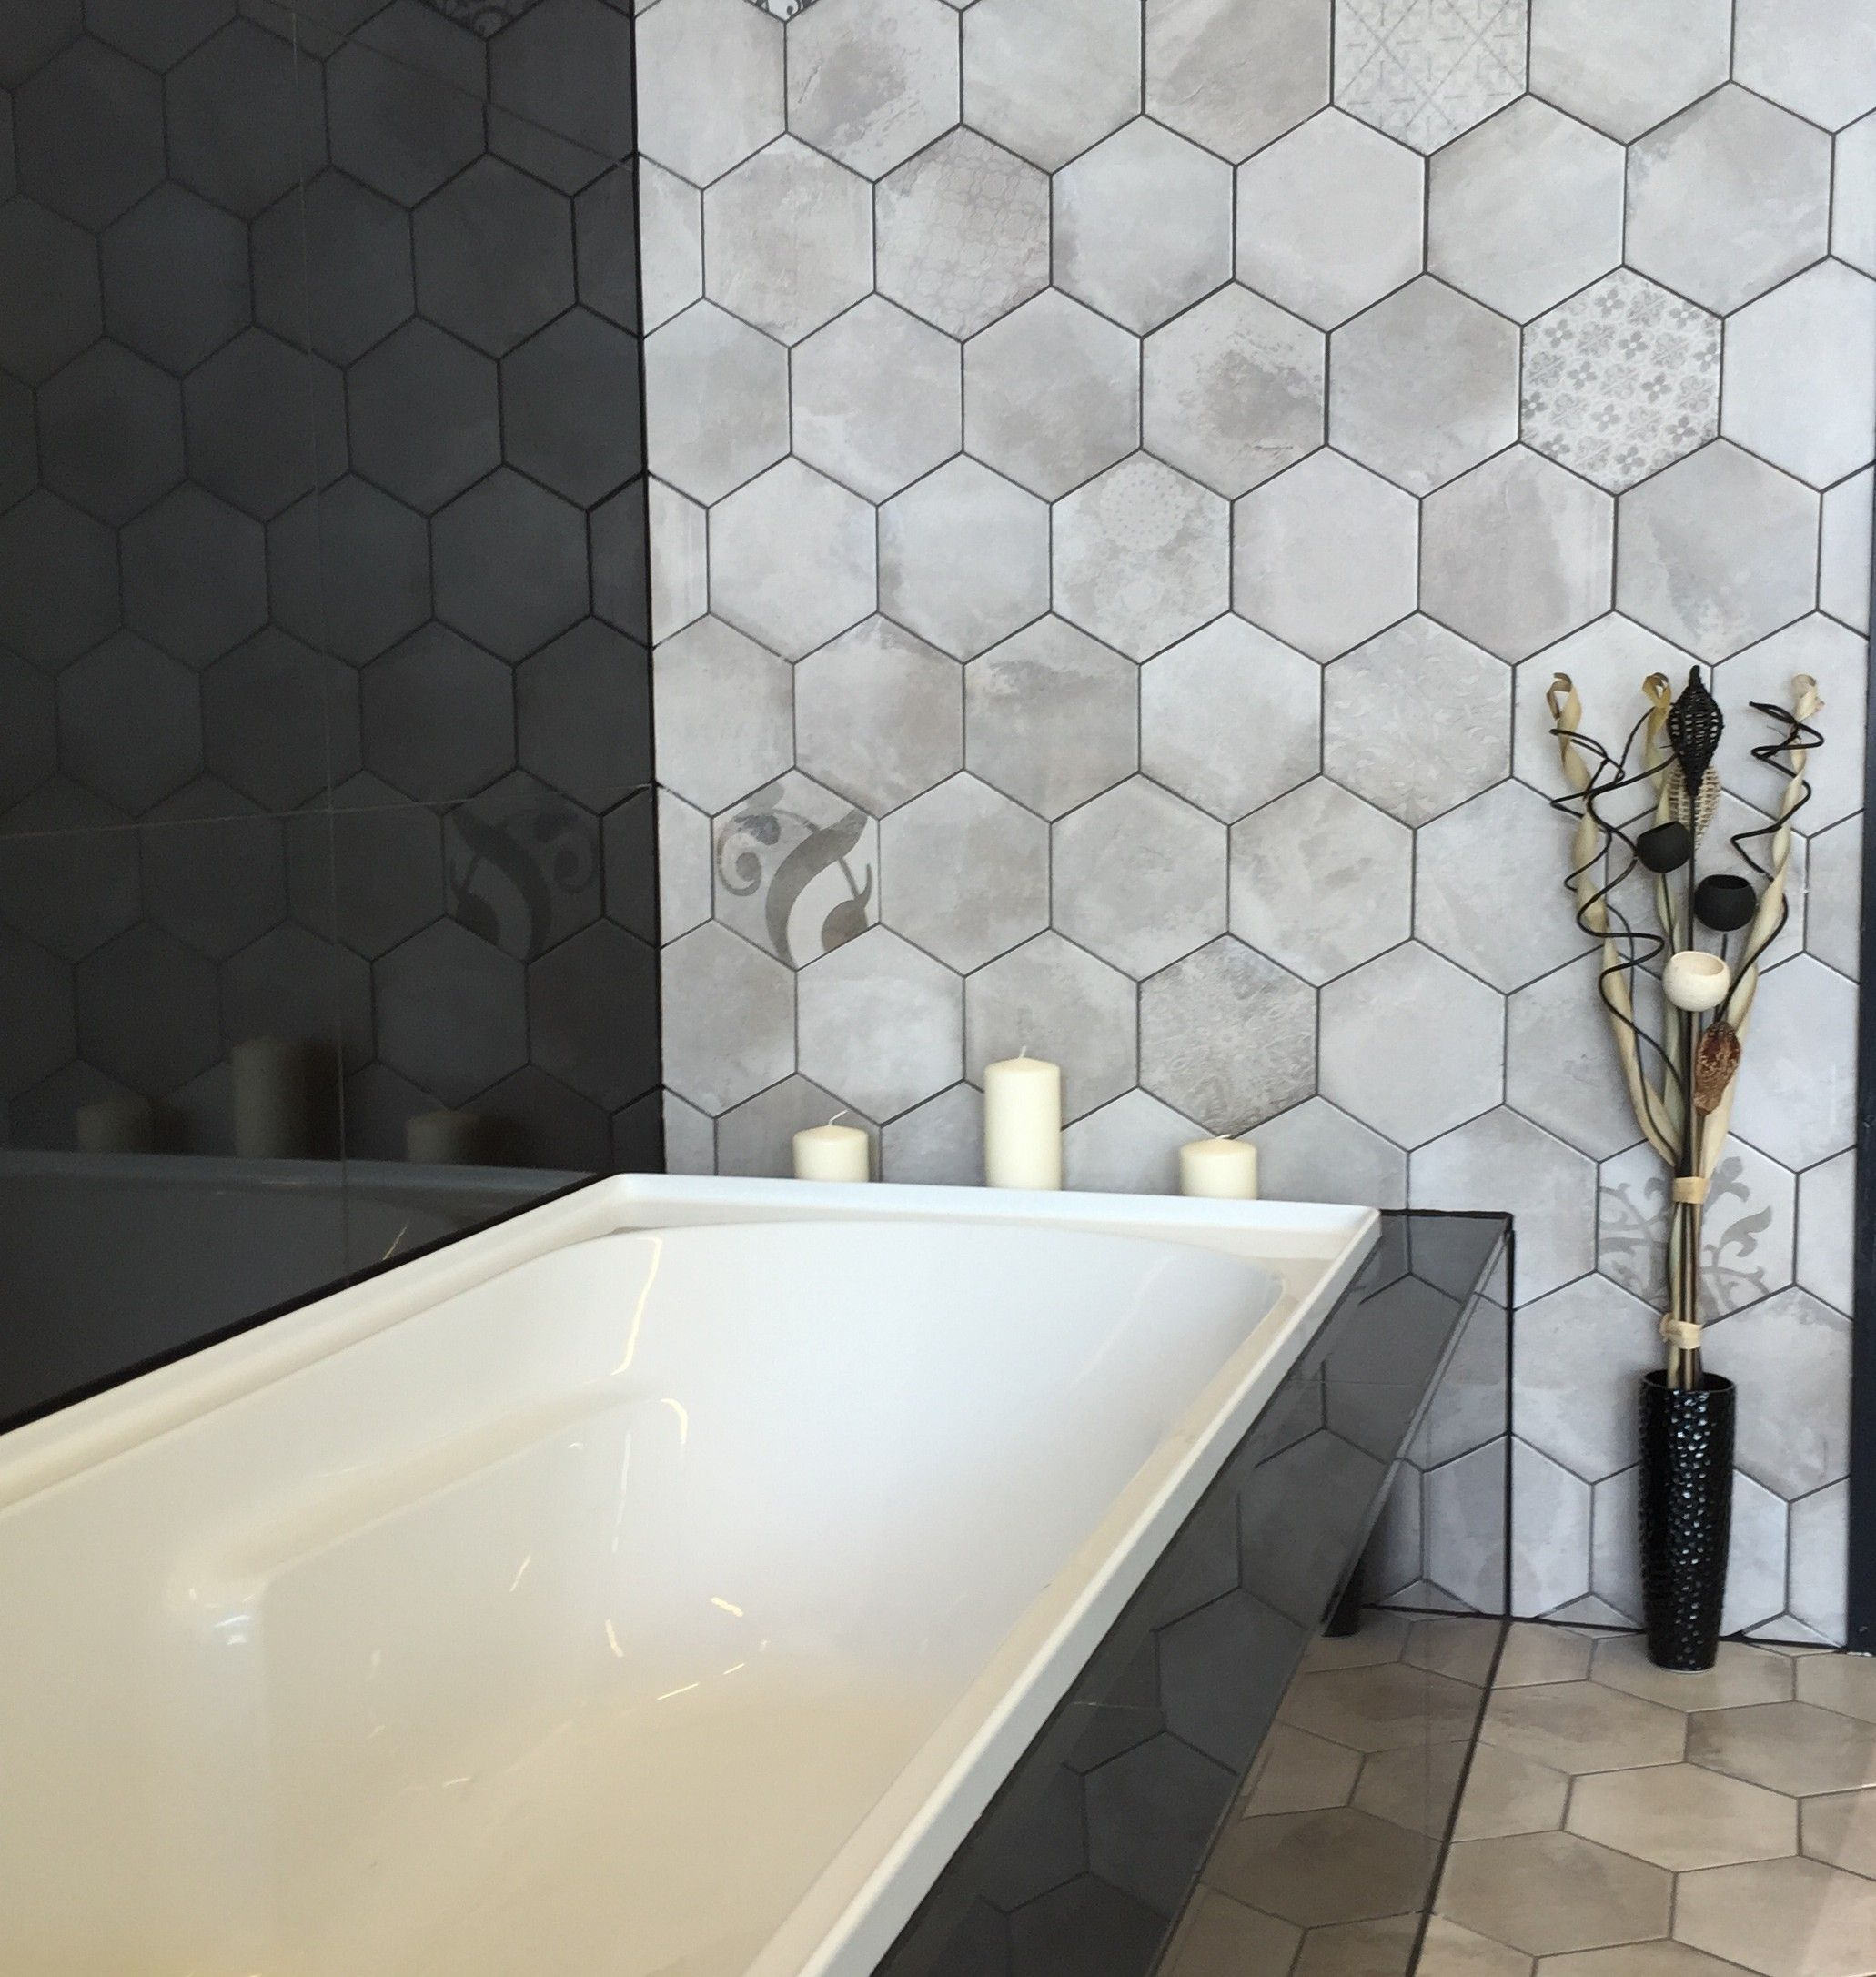 Domme grey hexagon 20x20 sqm floor tiles tiles our this plain grey hexagon tile features a natural matt stone look surface its can be used on floor and wall with stunning effects dailygadgetfo Image collections